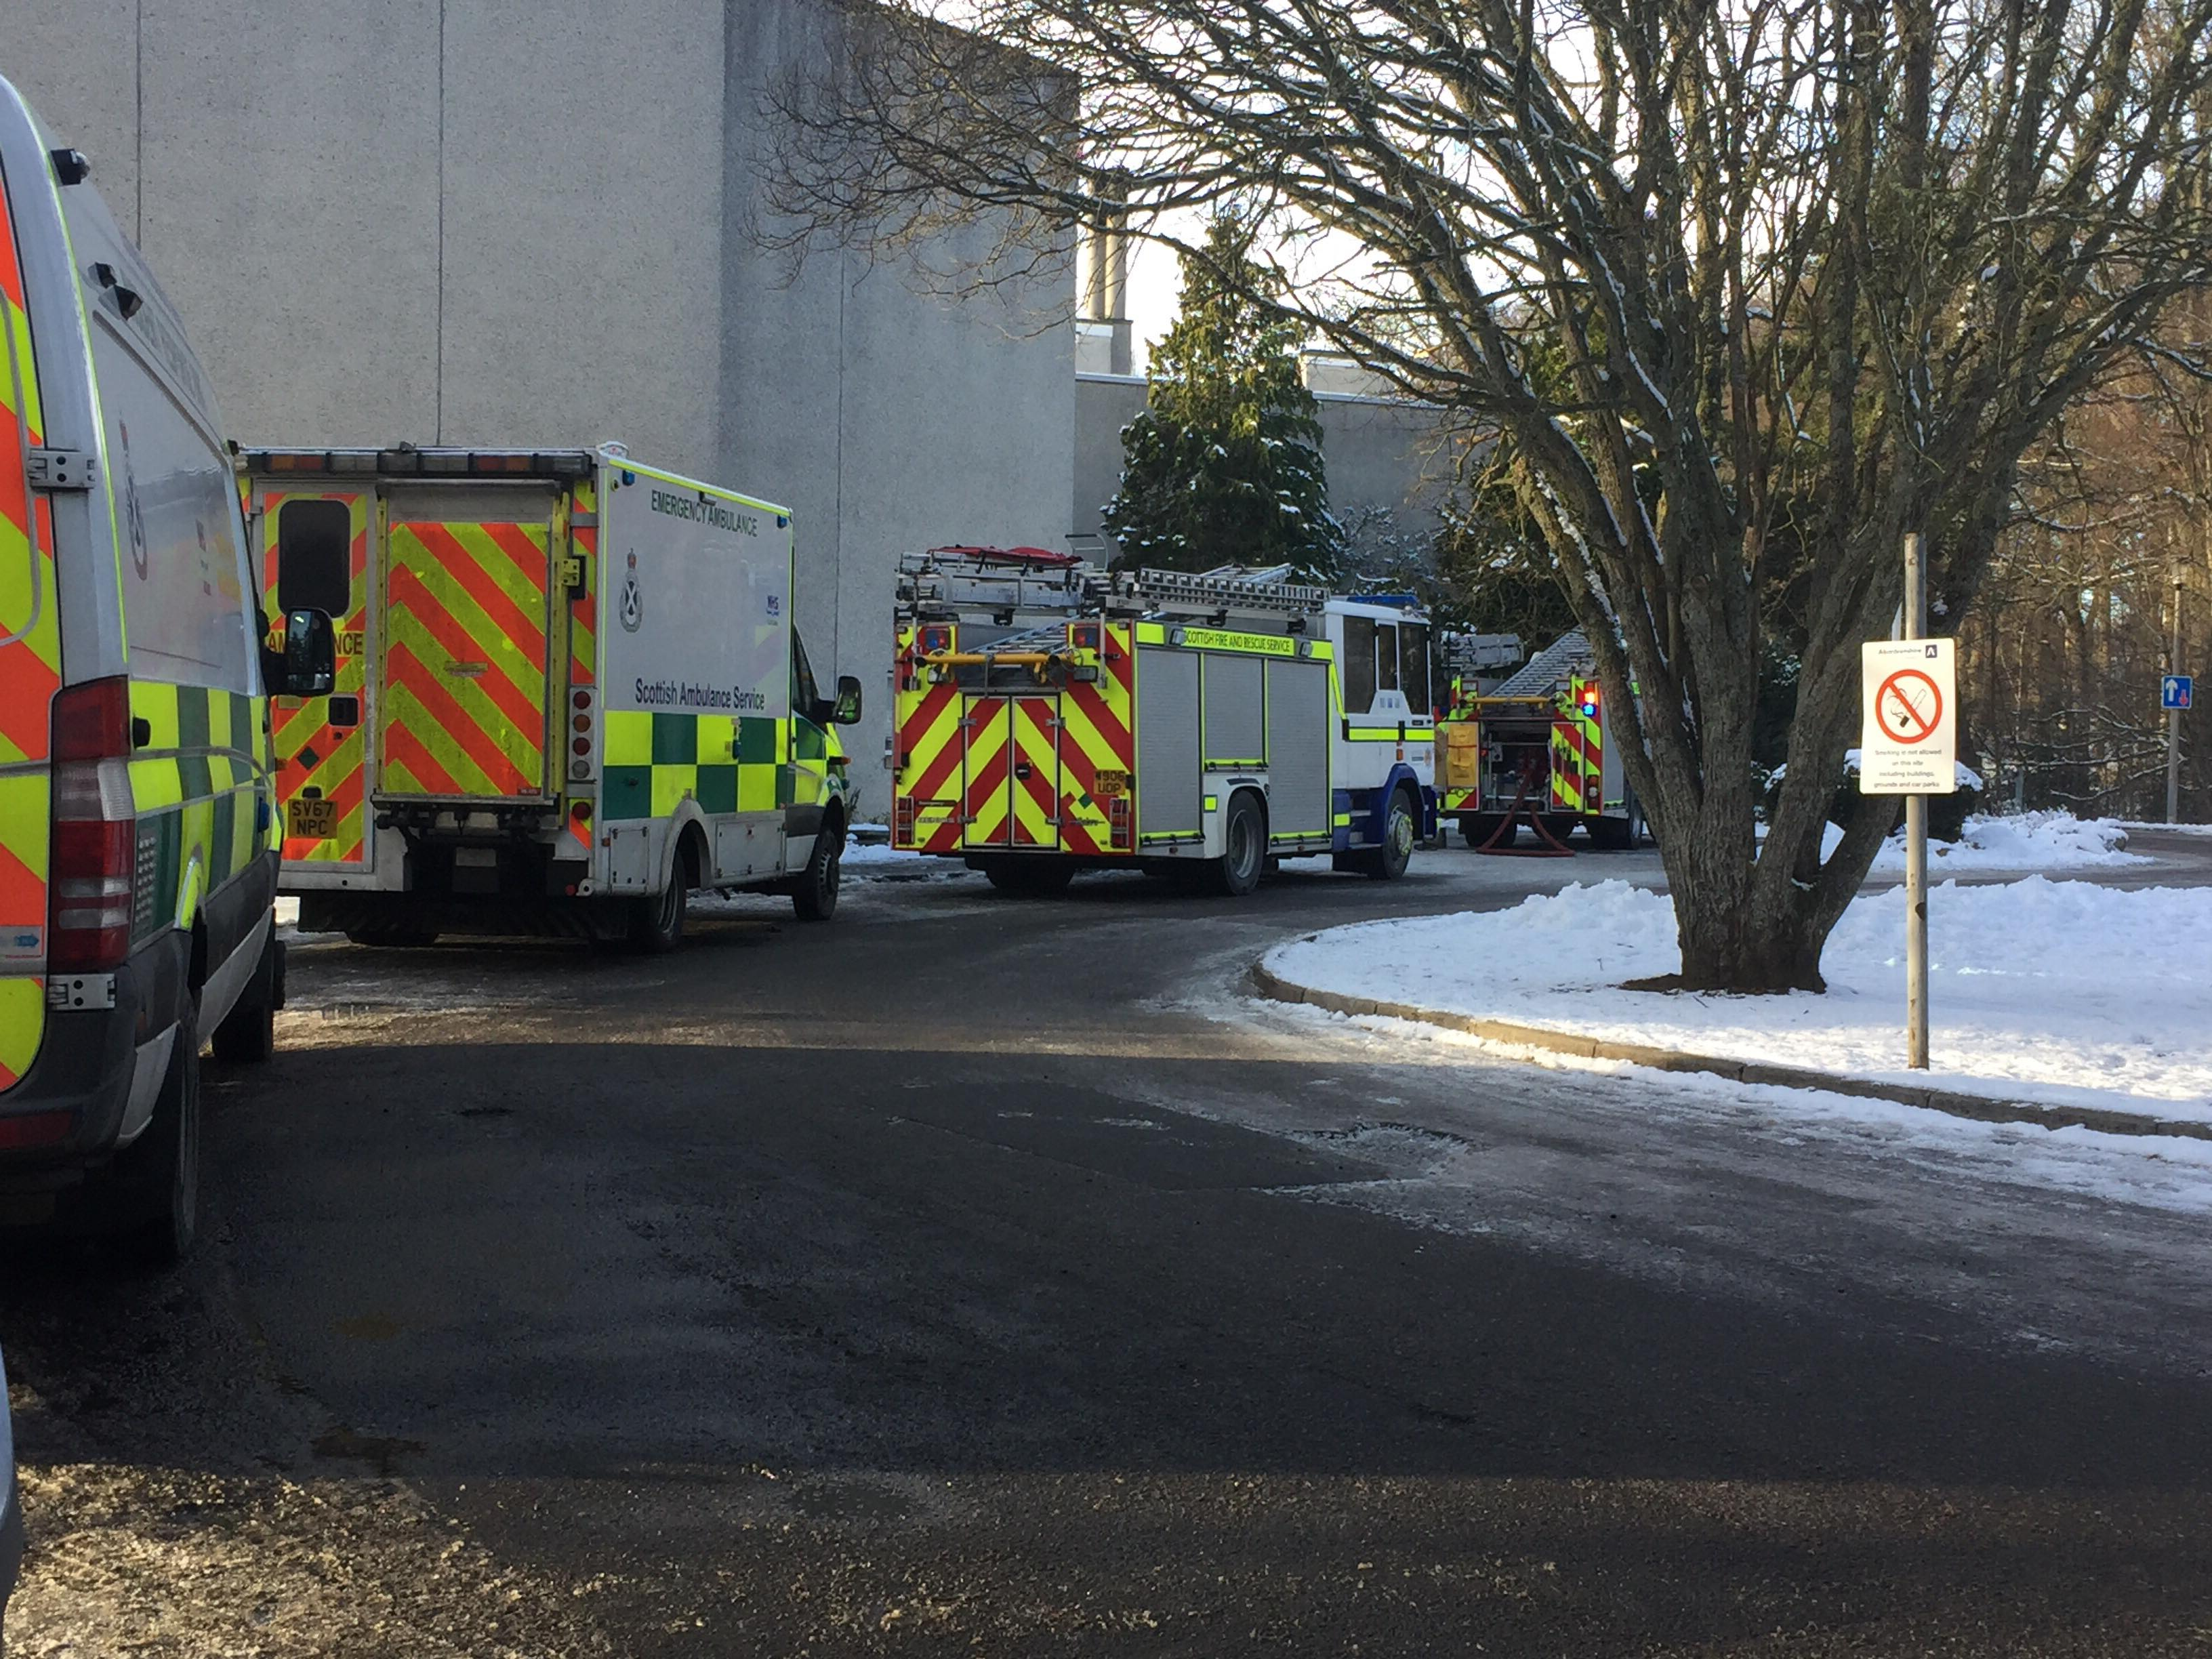 Aboyne Academy has been evacuated.